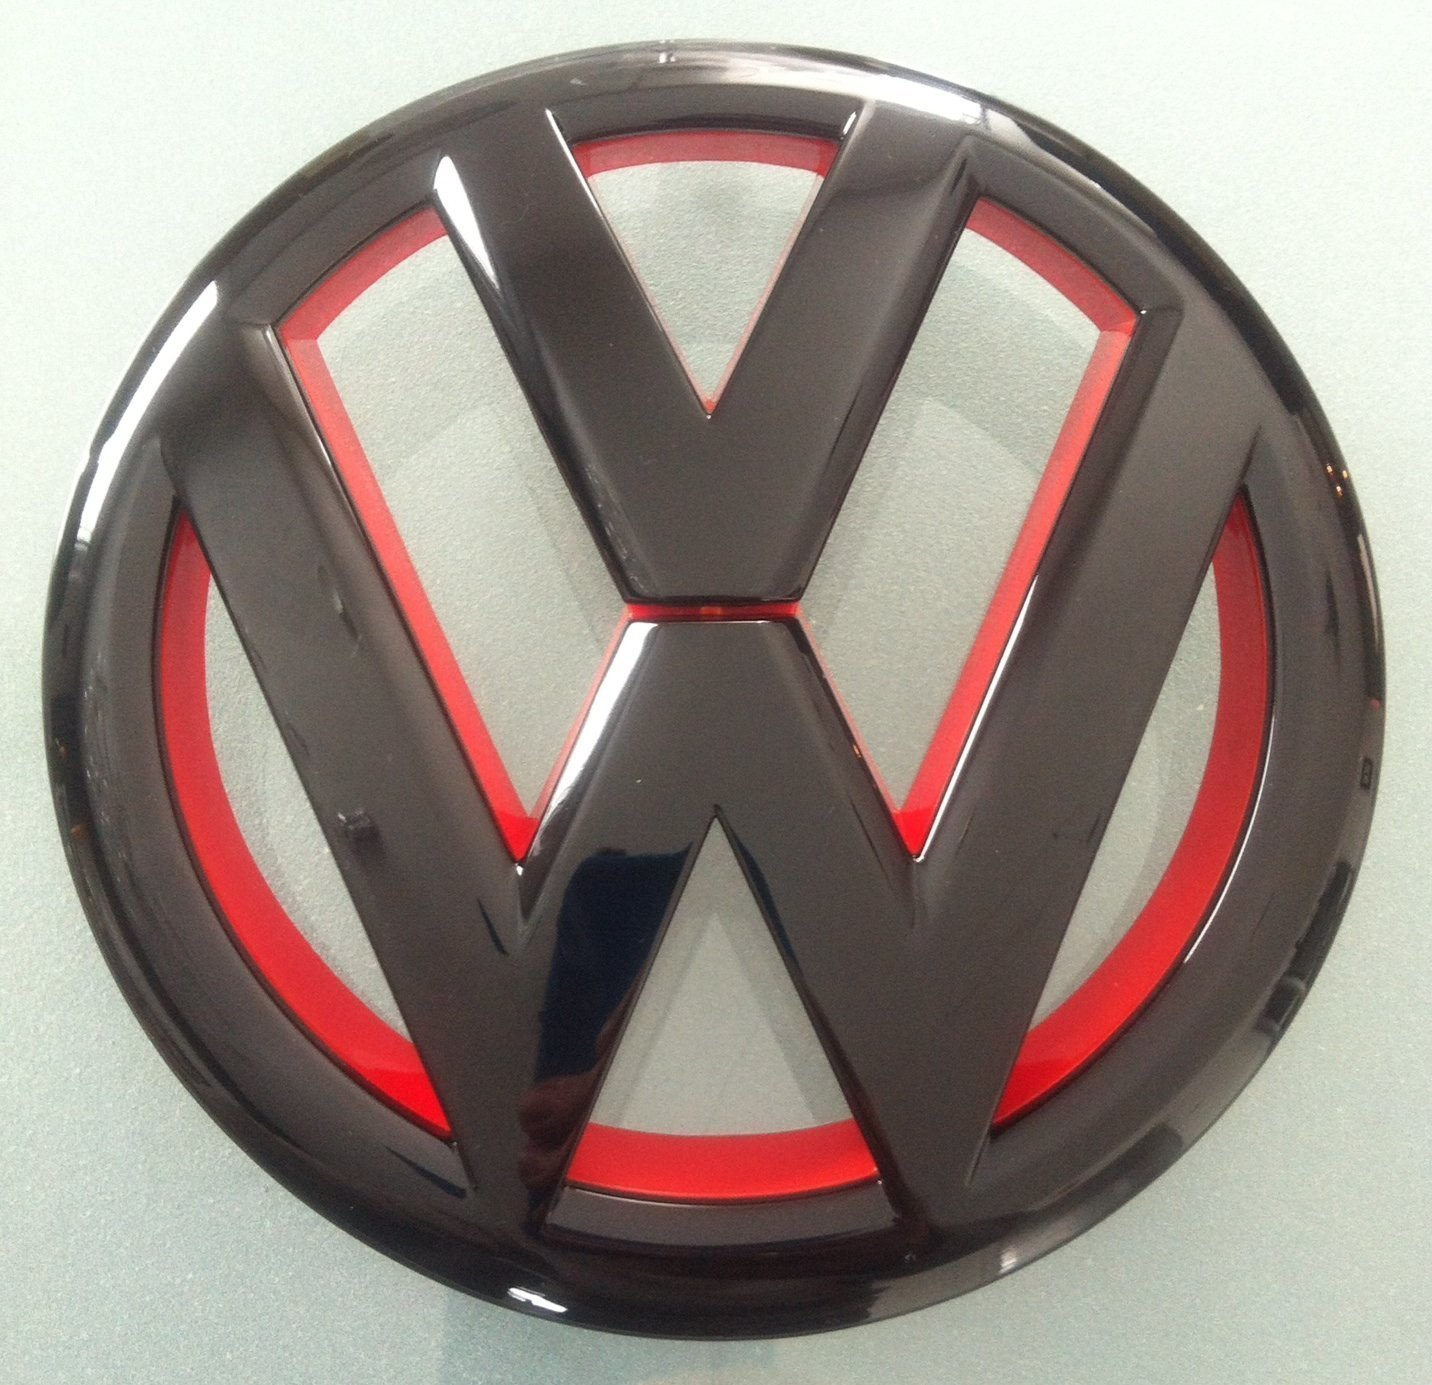 Euro Style Matte Black Red Inlay Front Grille Emblem For VW Golf MK6 1.4T 2.0T GTI TDI by autobizpro: Amazon.es: Coche y moto